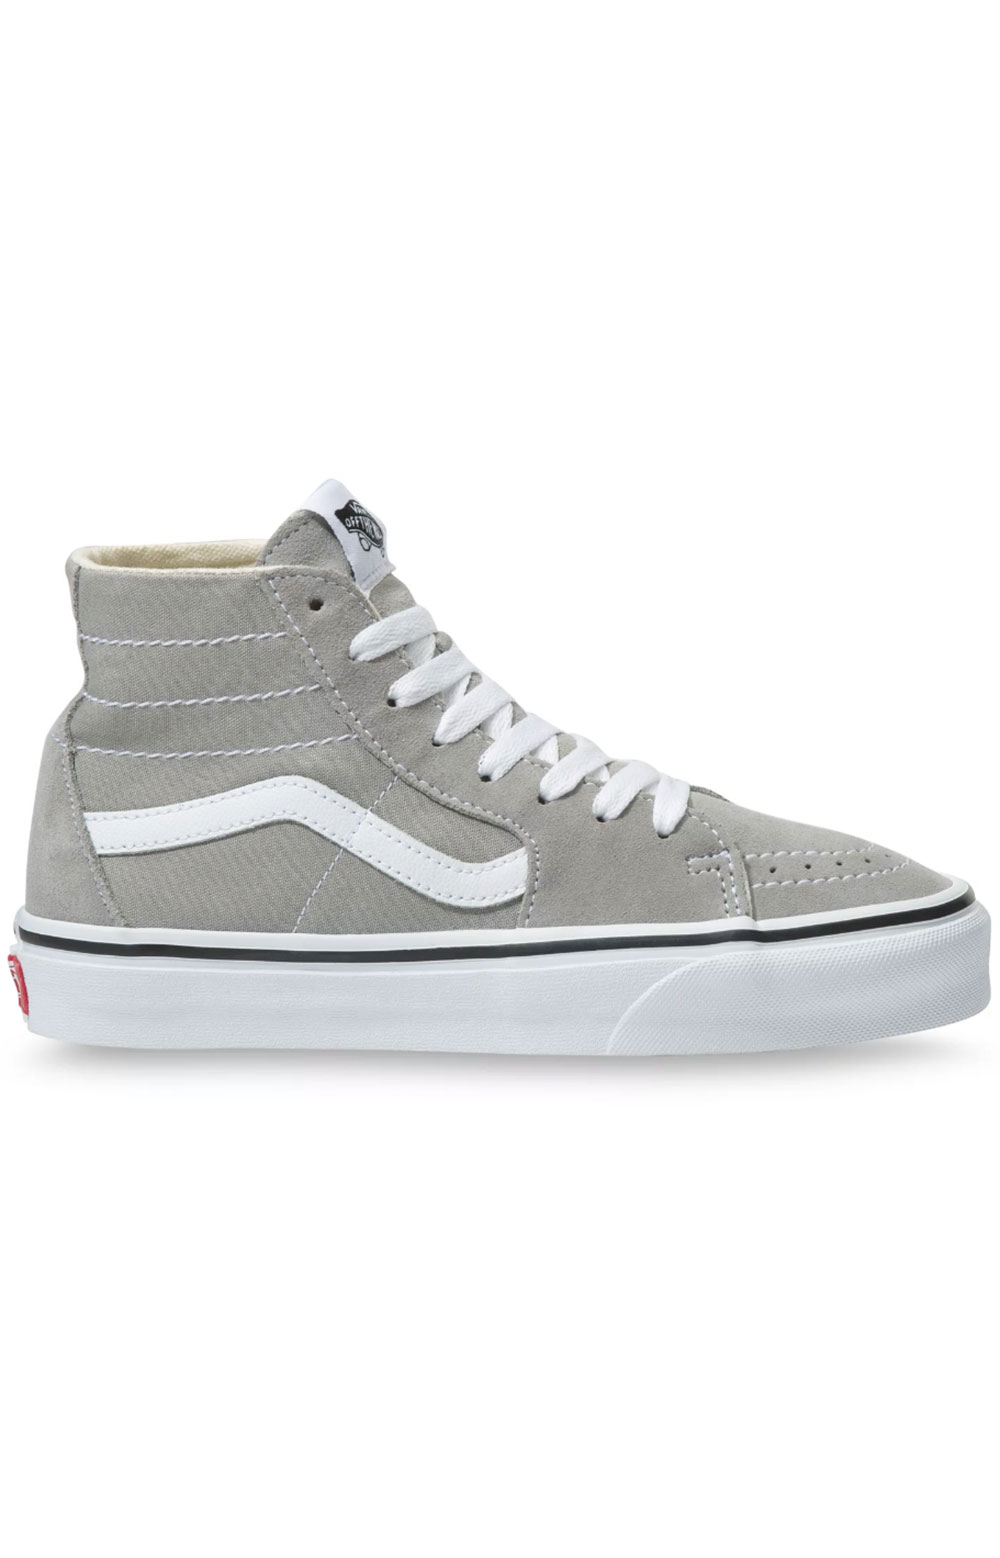 (U16IYP) Sk8-Hi Tapered Shoes - Drizzle/True White